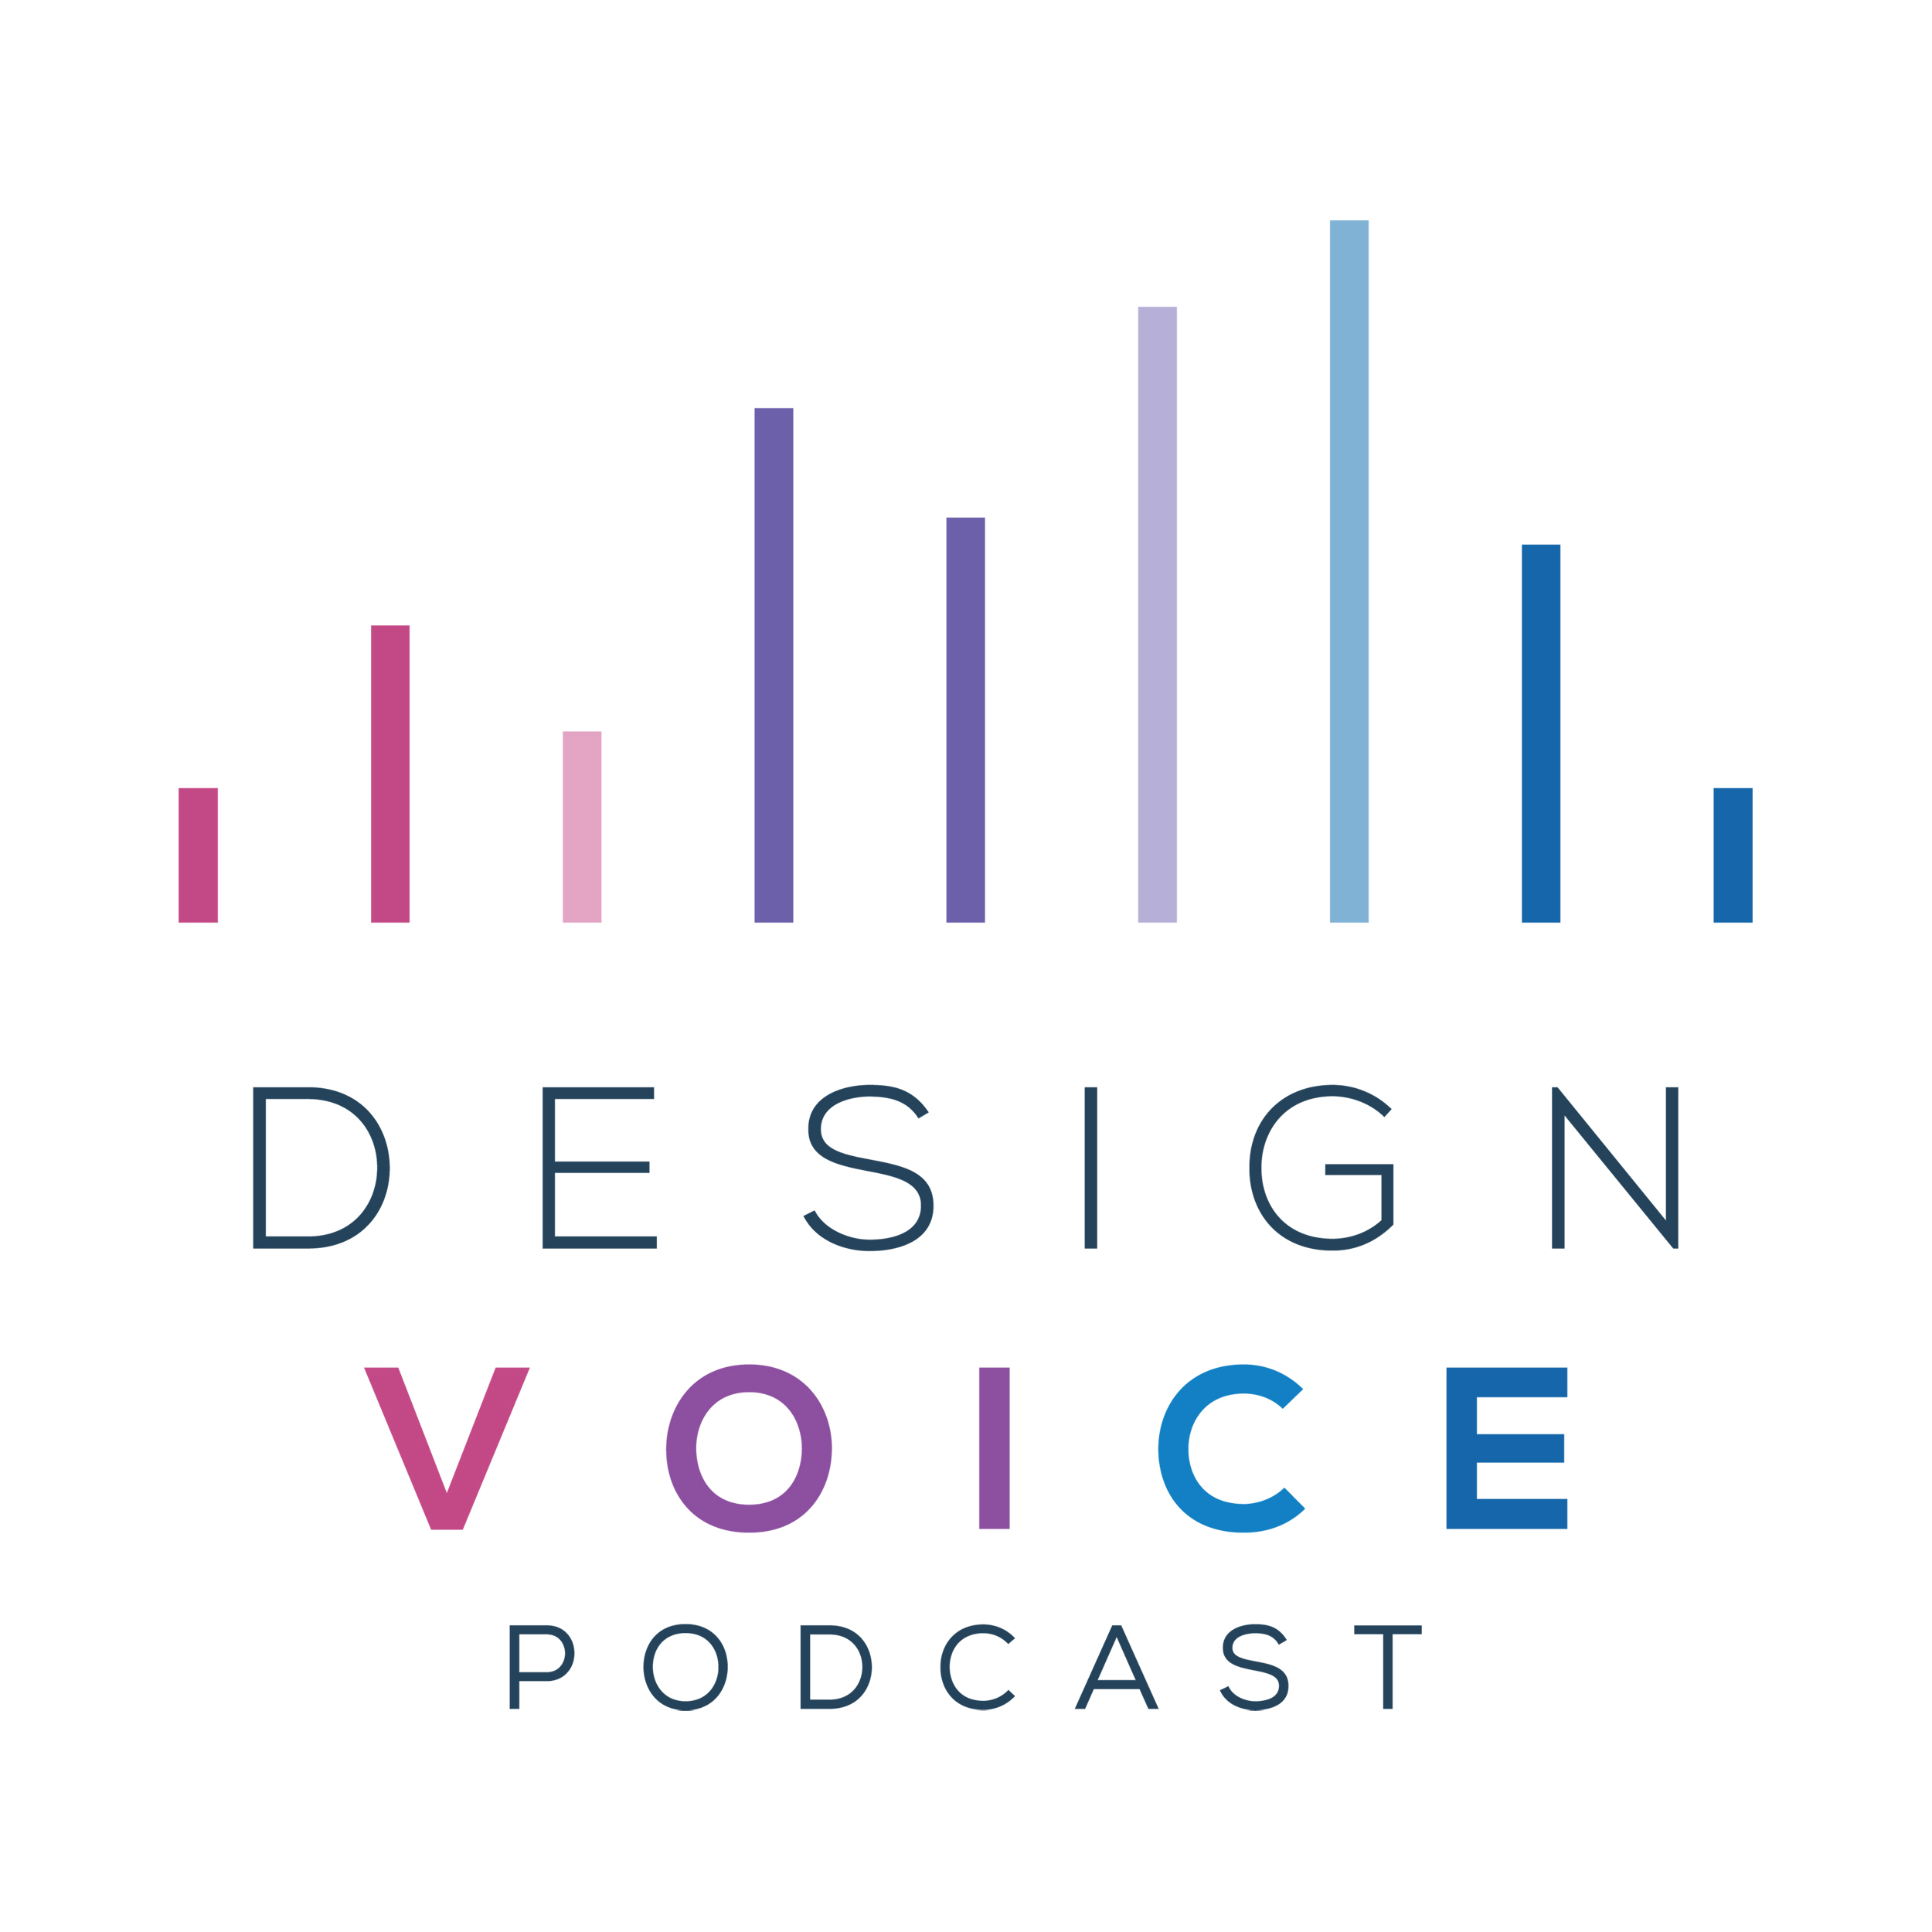 Design Voice Podcast